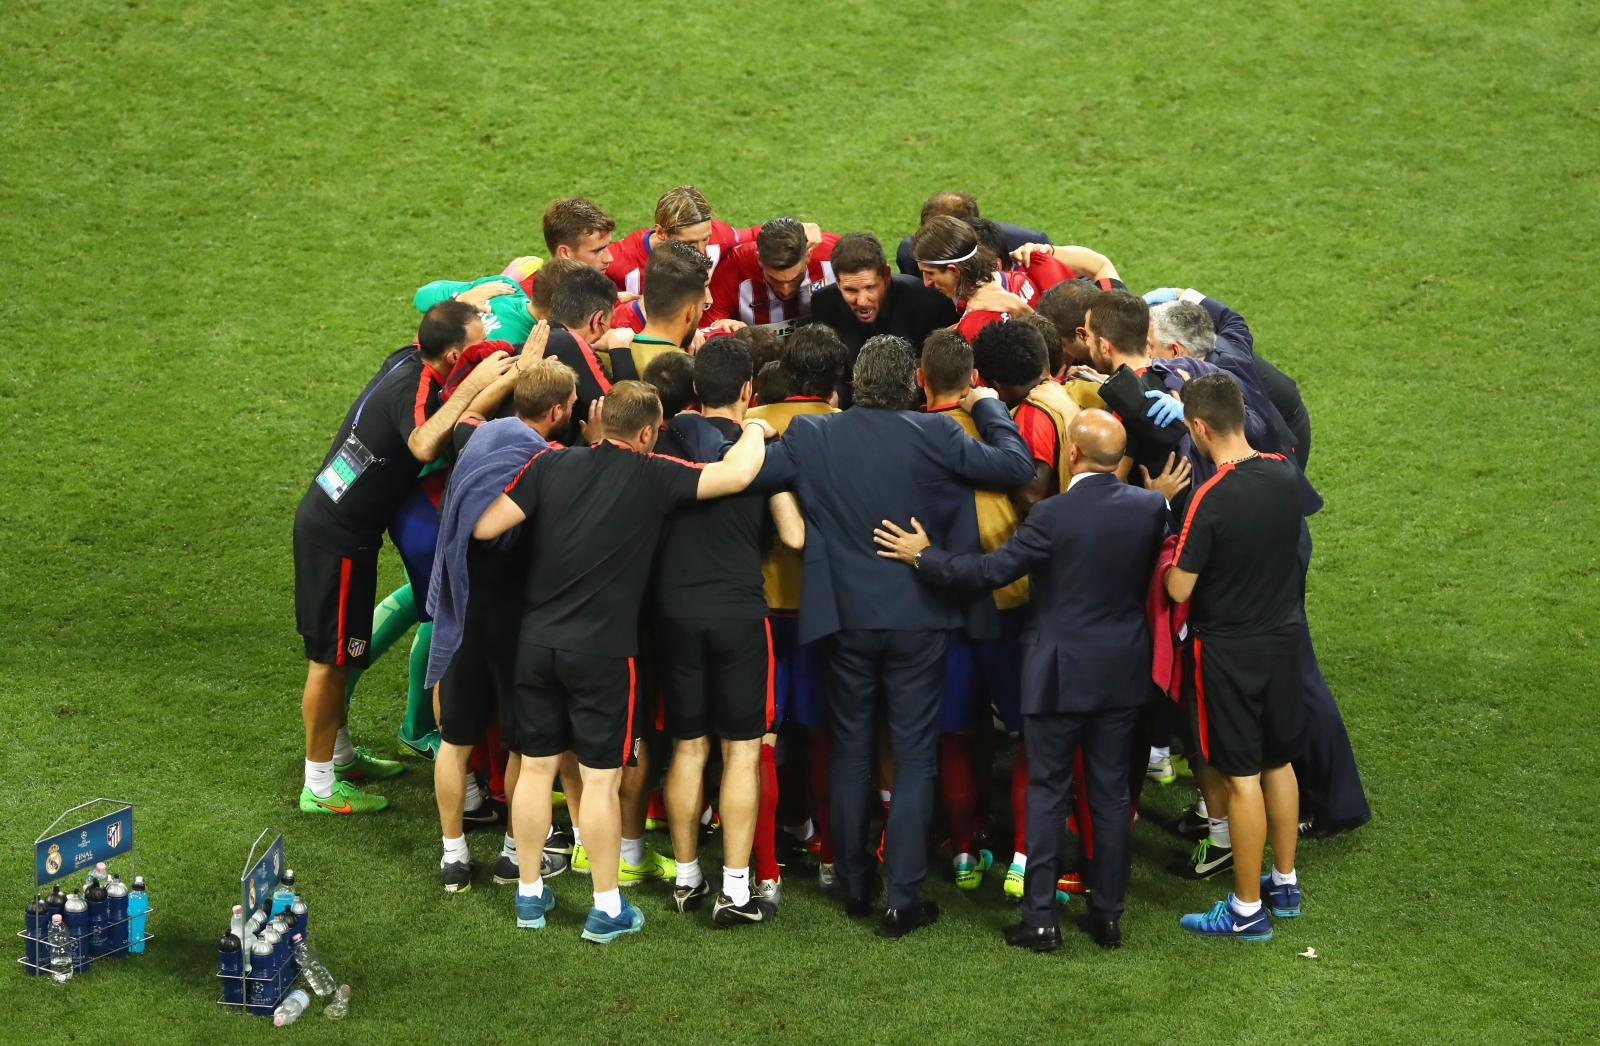 Atletico have a team huddle